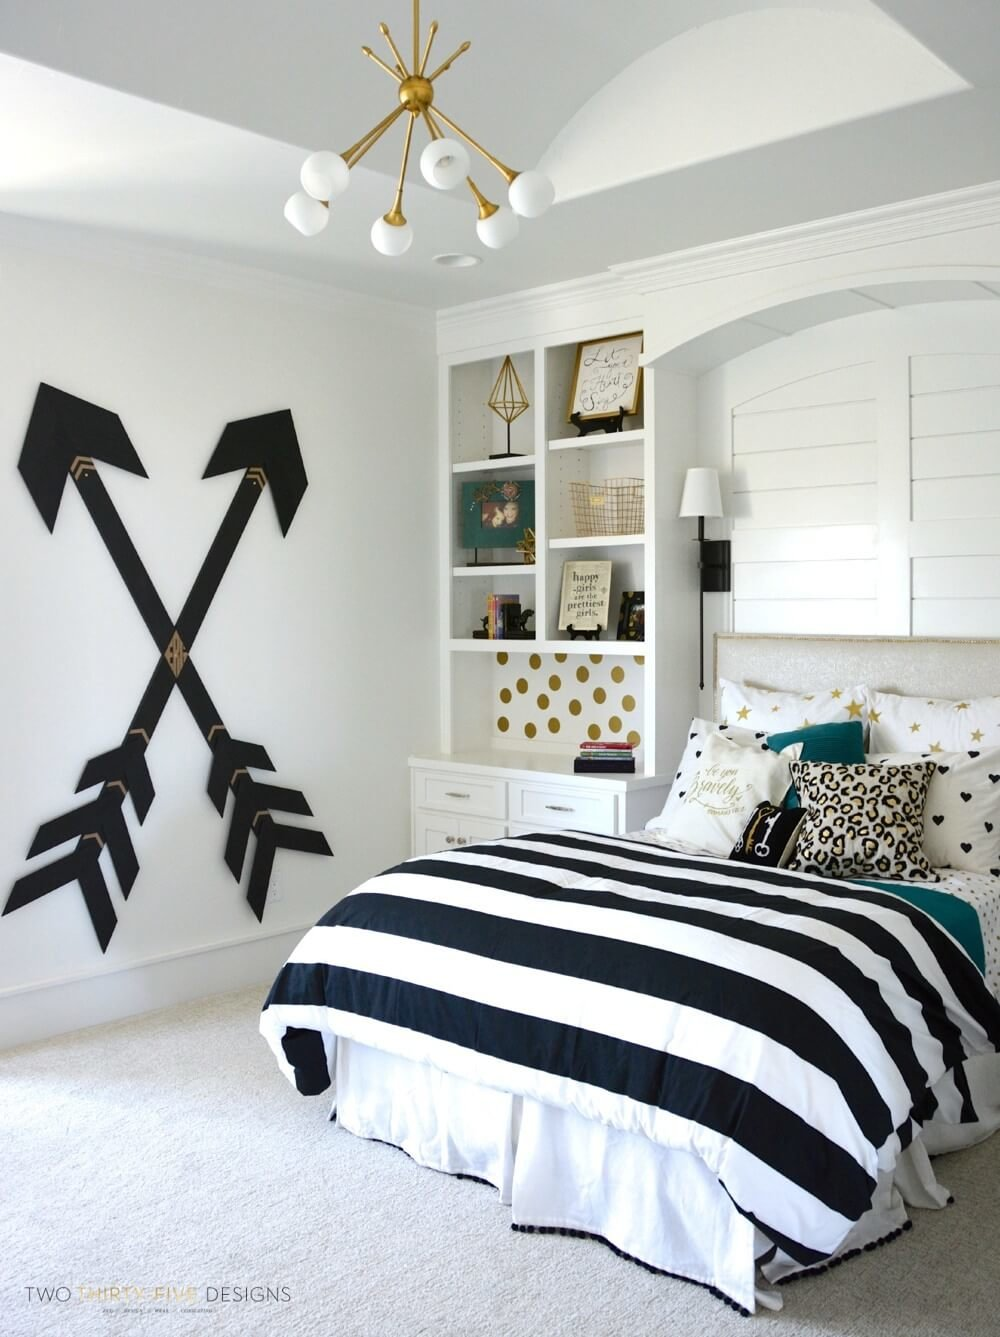 65 cute teenage girl bedroom ideas that will blow your mind. Black Bedroom Furniture Sets. Home Design Ideas